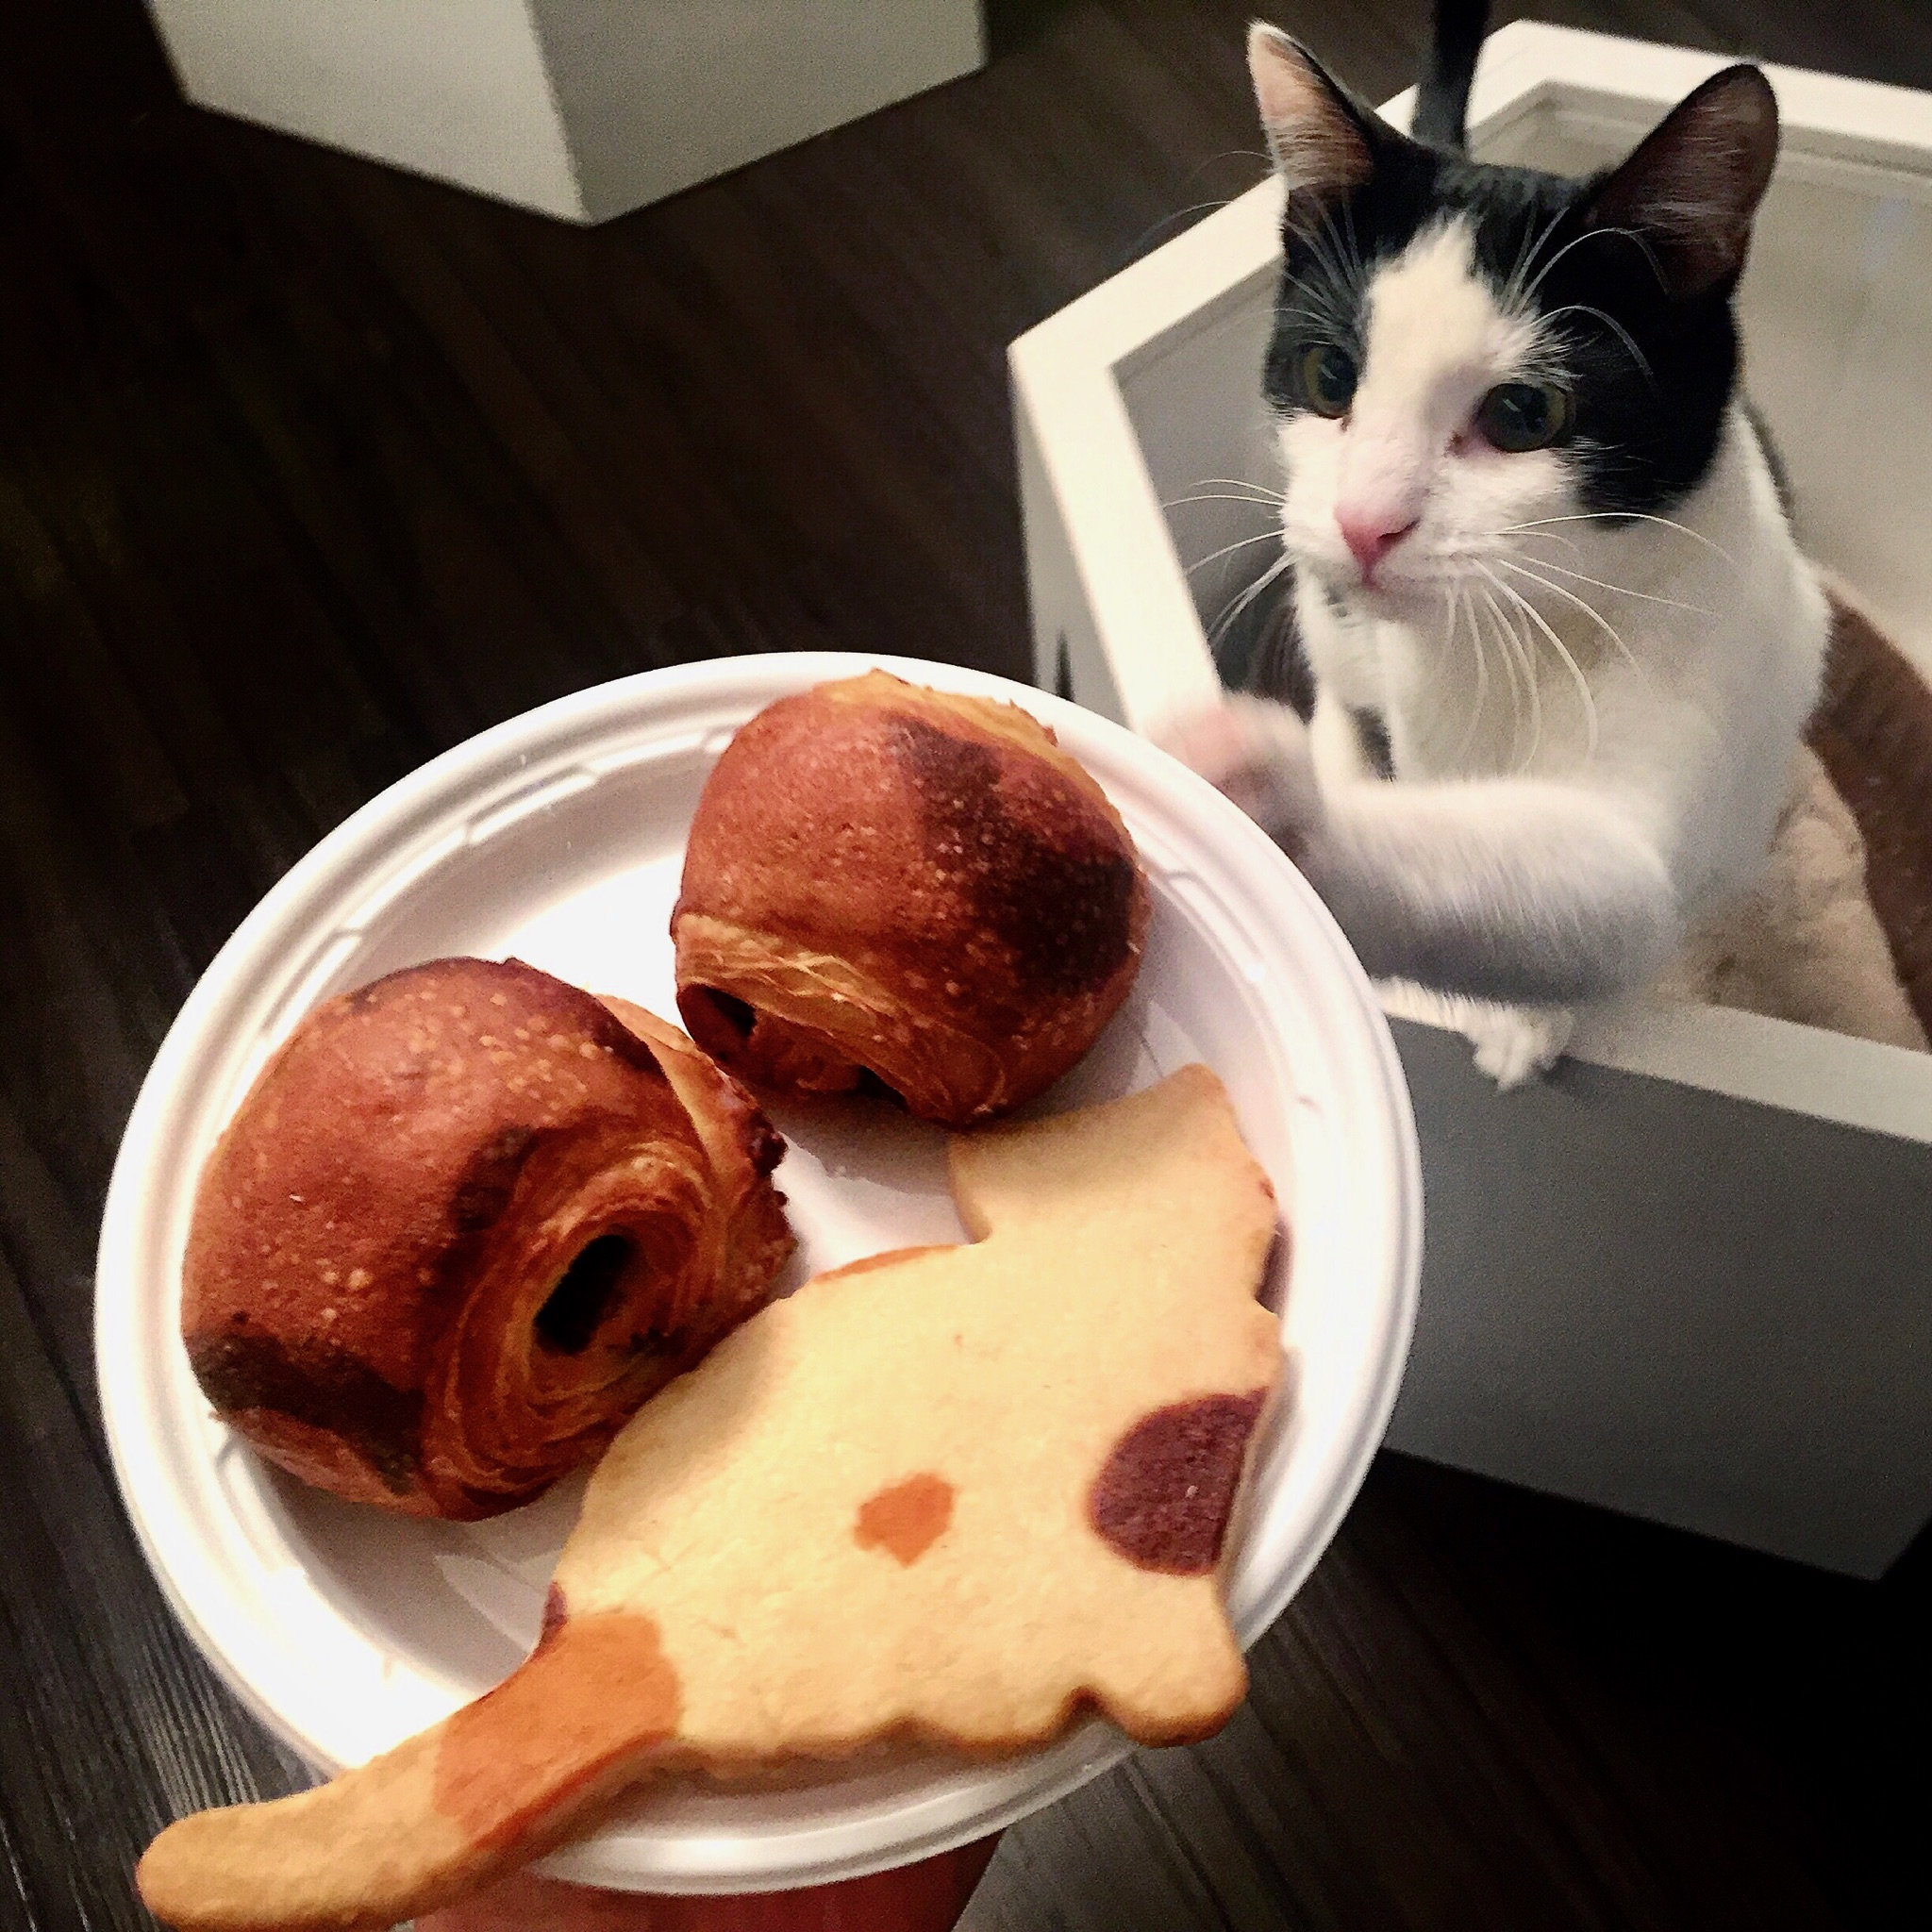 Snack Time With Our Cats - A special package to enjoy more time with the kitties and some treats :+ 1.5 hour in the cat space+ 1 baked goods+ 4 macarons or 1 ice-cream sandwich+ 1 beverageFor adults & children 9 and older (Guests under 16 must come with a chaperone) $35 (Monday, Tuesday, Thursday, Friday at 12:15pm and 2:15pm only).For a regular reservation, book here.